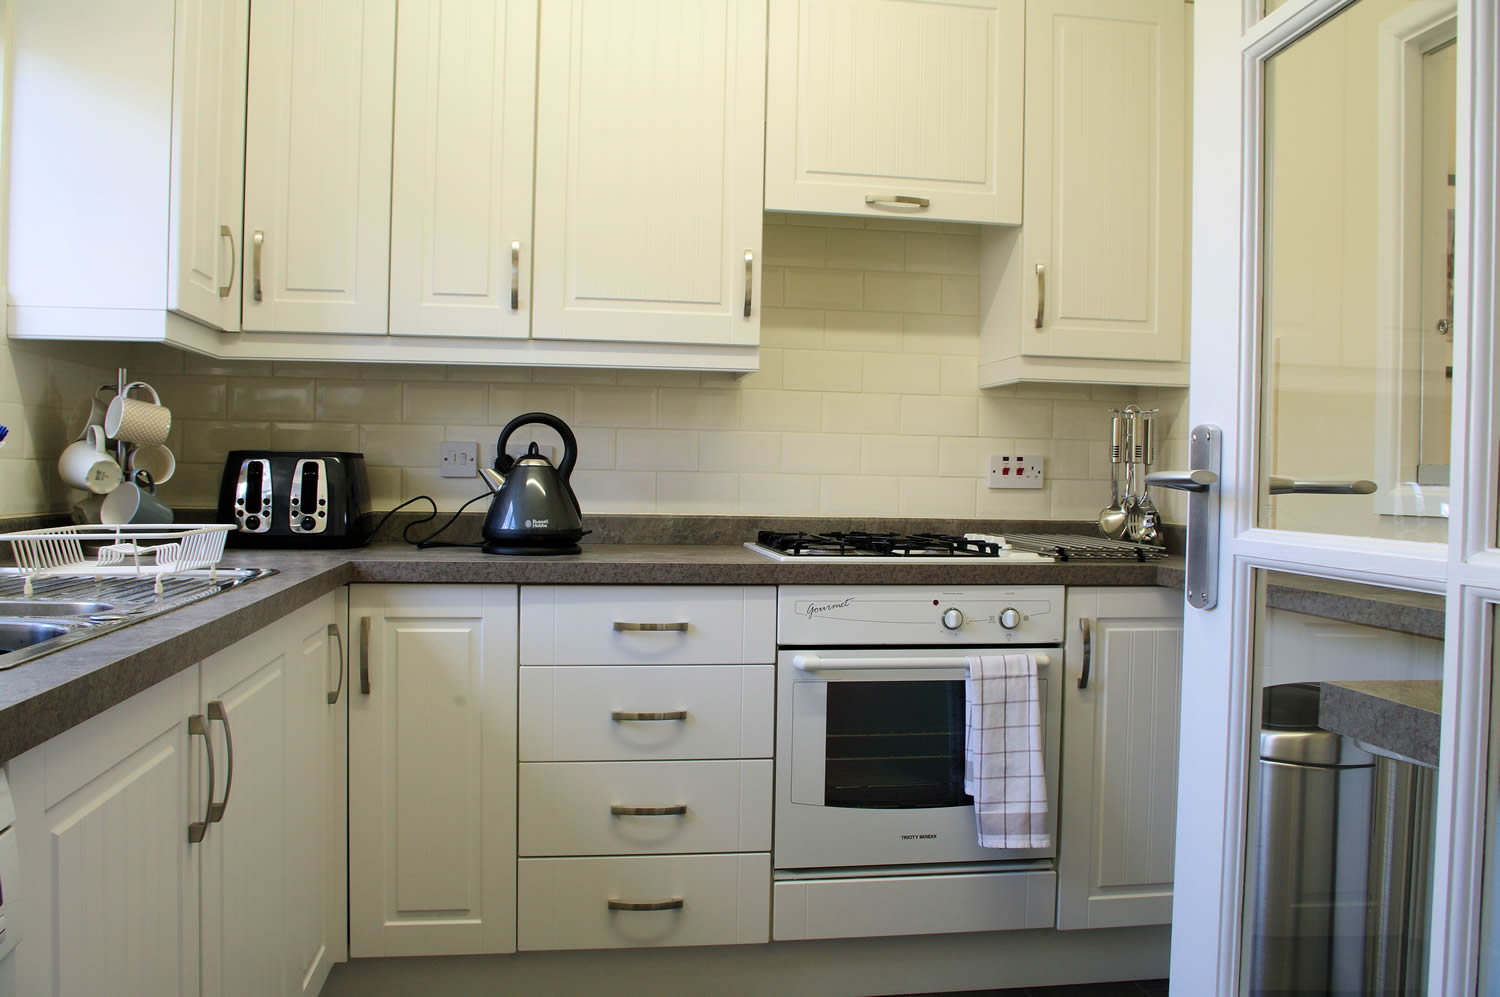 Holme view accommodation ripon north yorkshire for Food pantry ripon wi